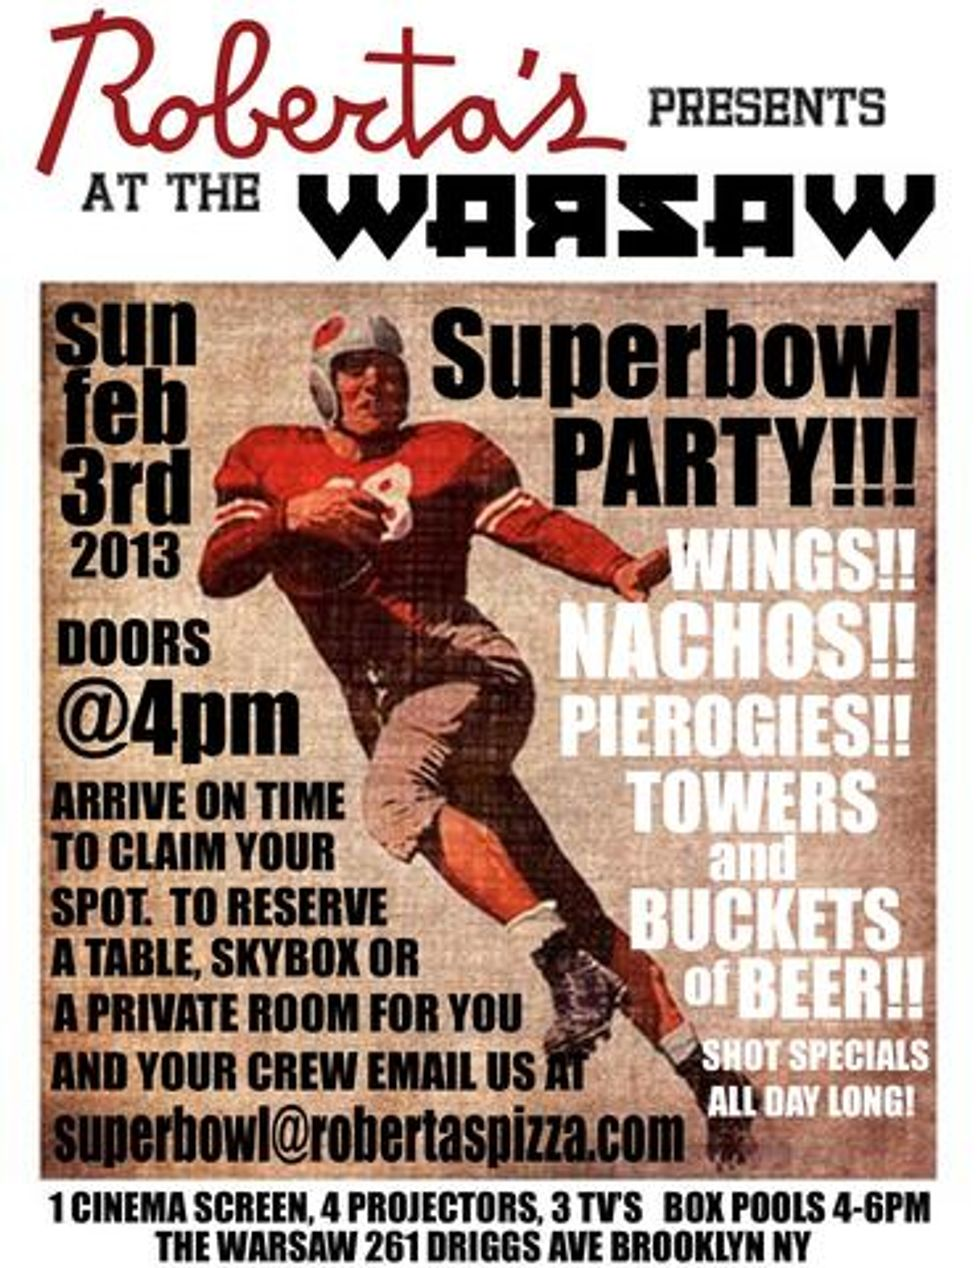 Riot Grrrl Cover Bands, Superbowl Parties and Airplane! this Weekend in NYC